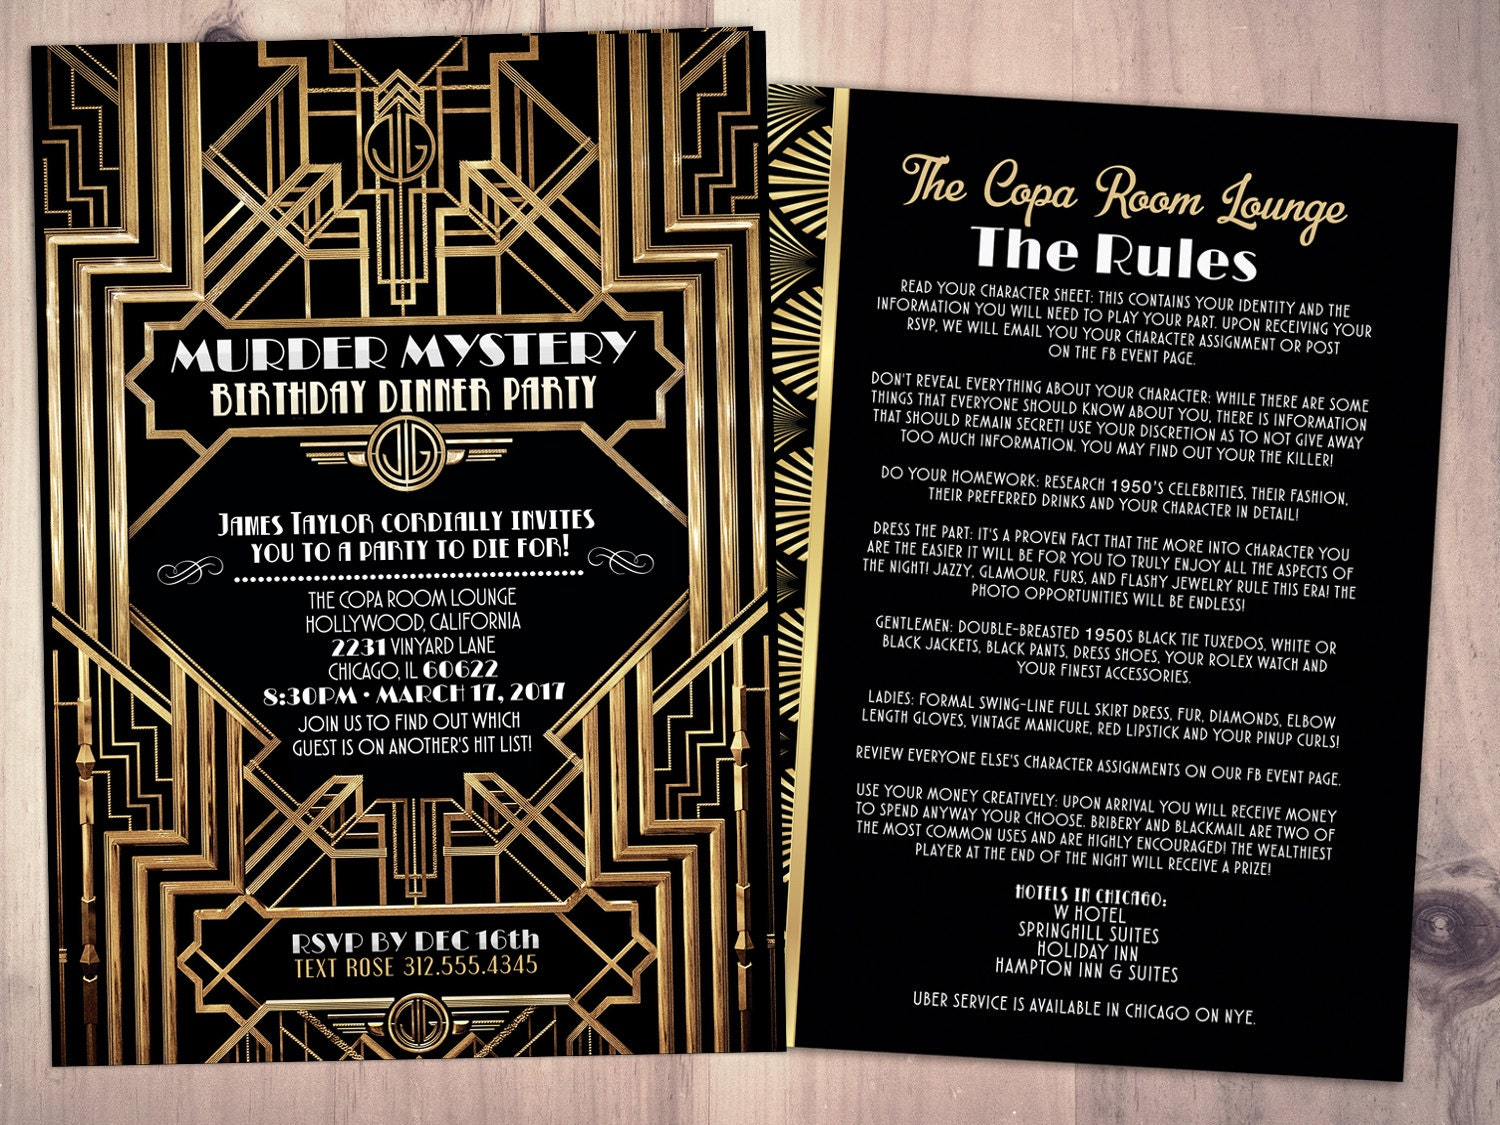 Murder Mystery Dinner Party Invitation, Vintage Party Invitation ...